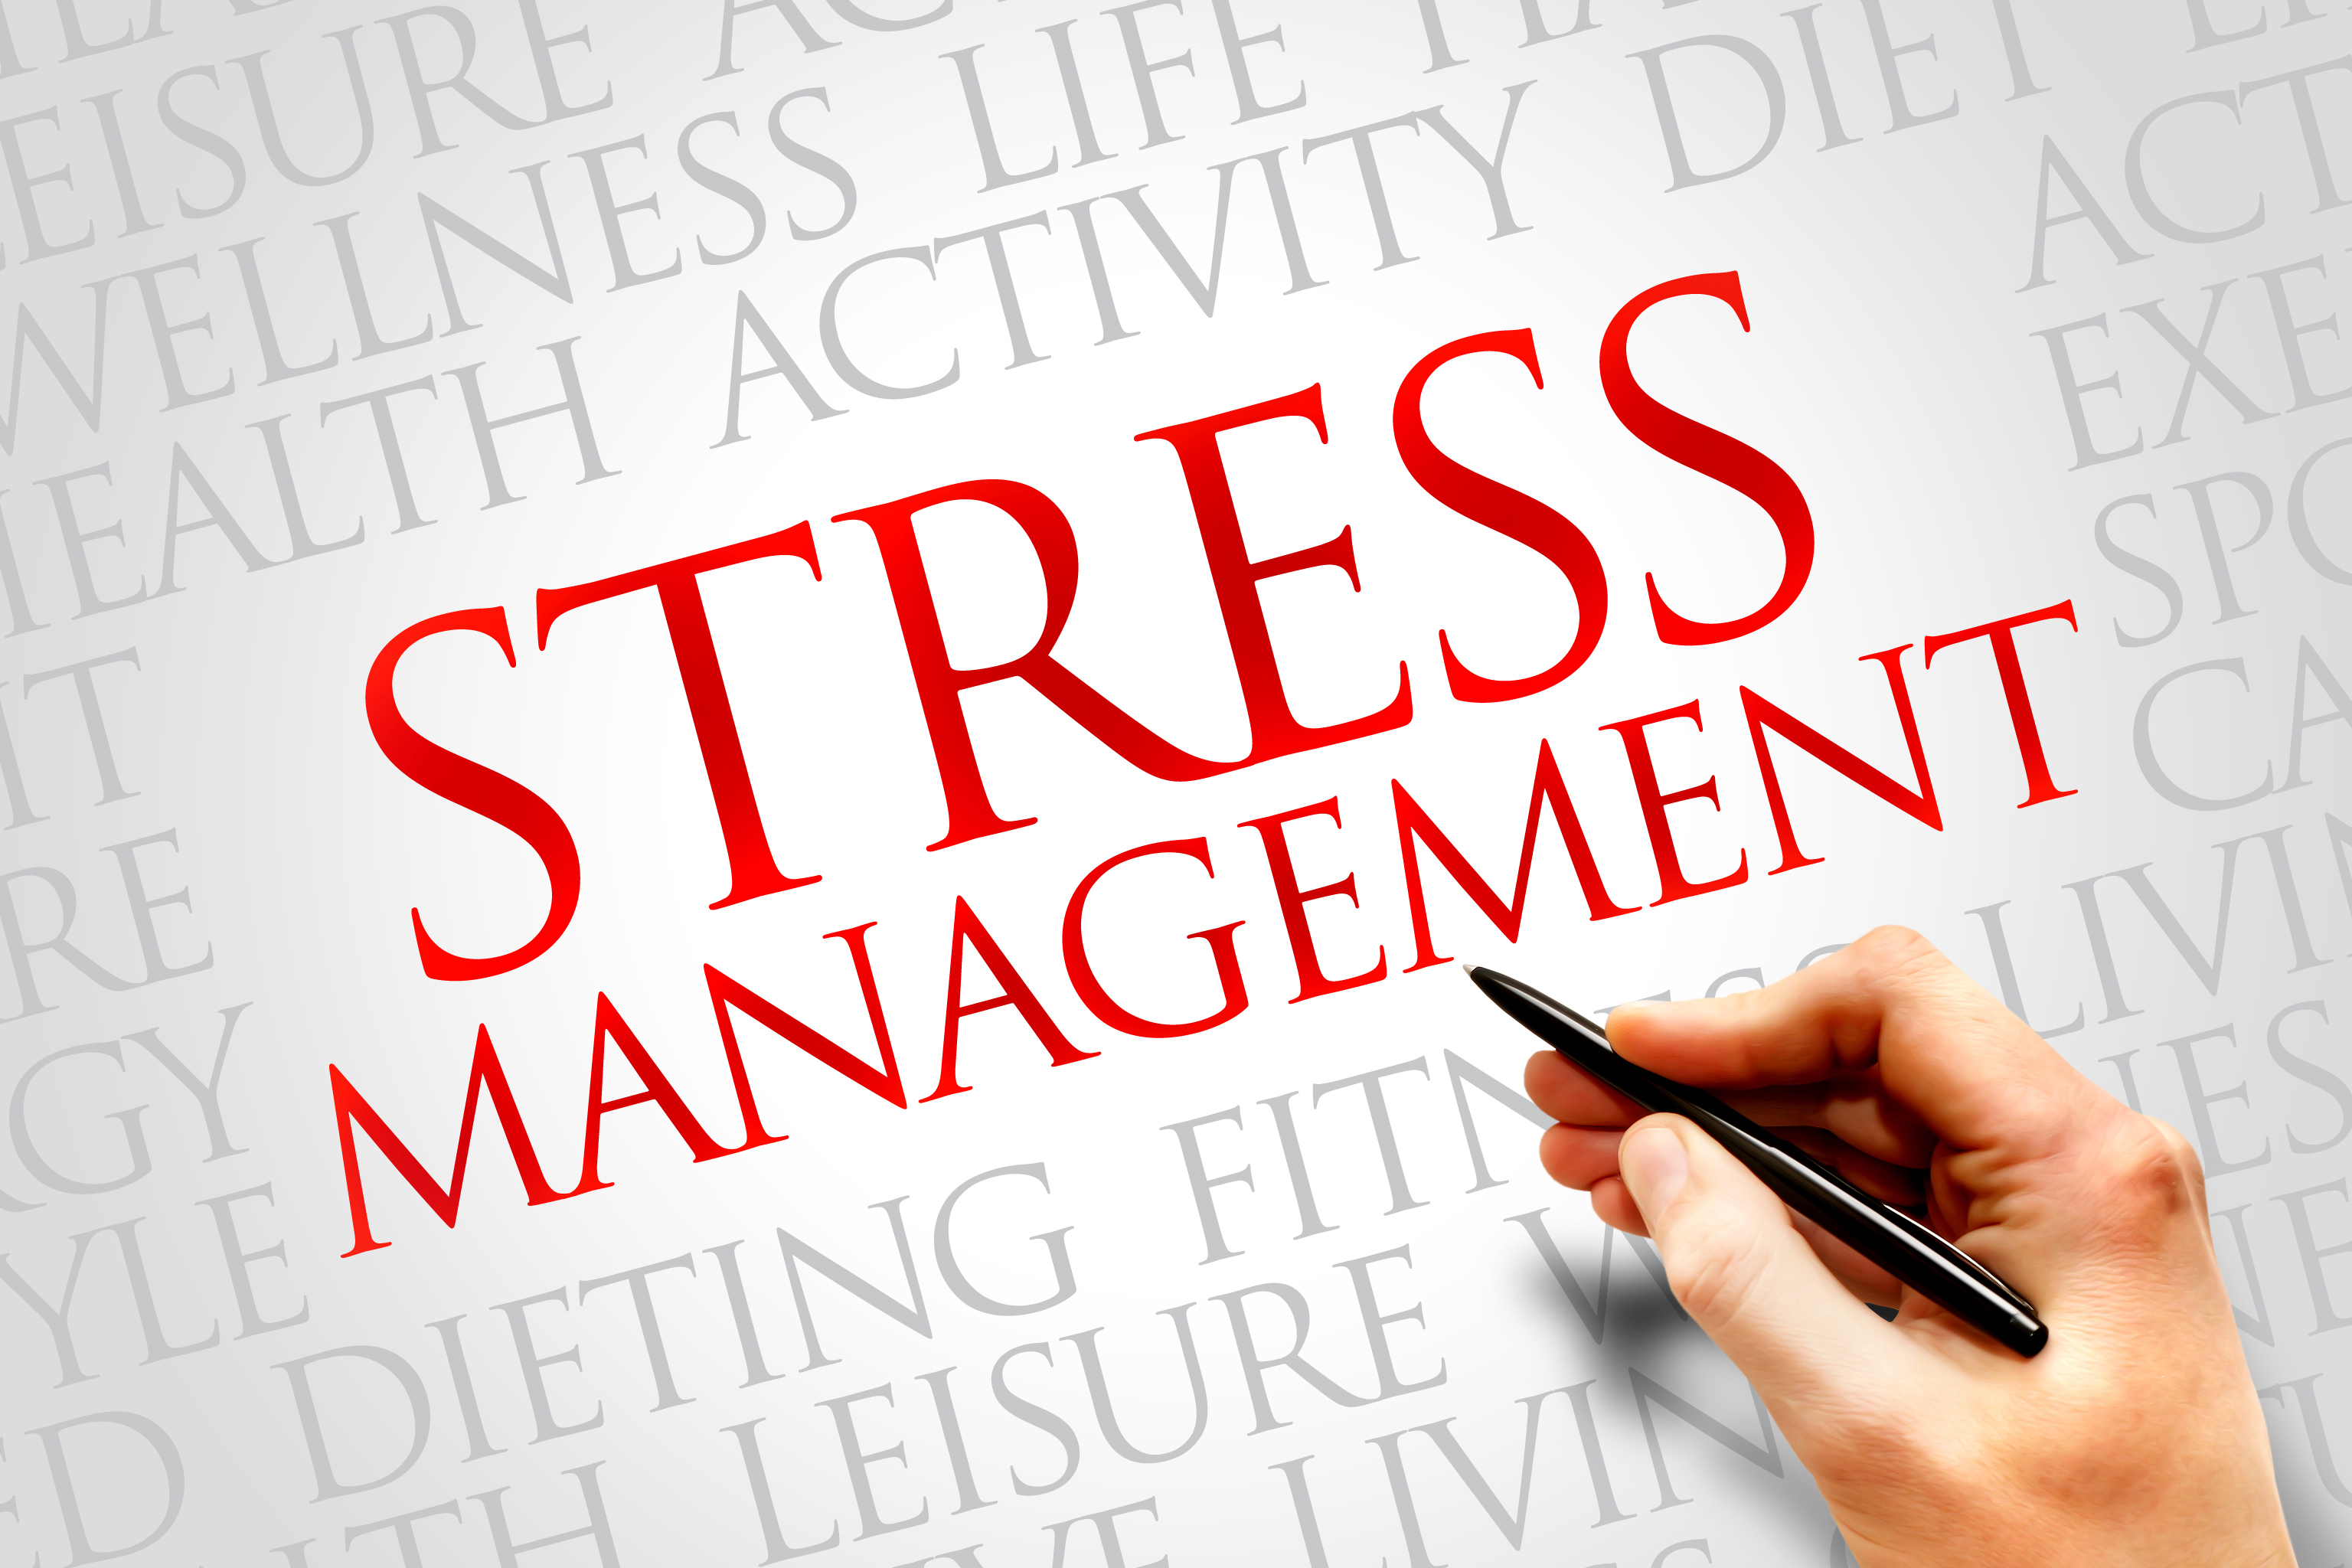 <B>STRESS MANAGEMENT</B>